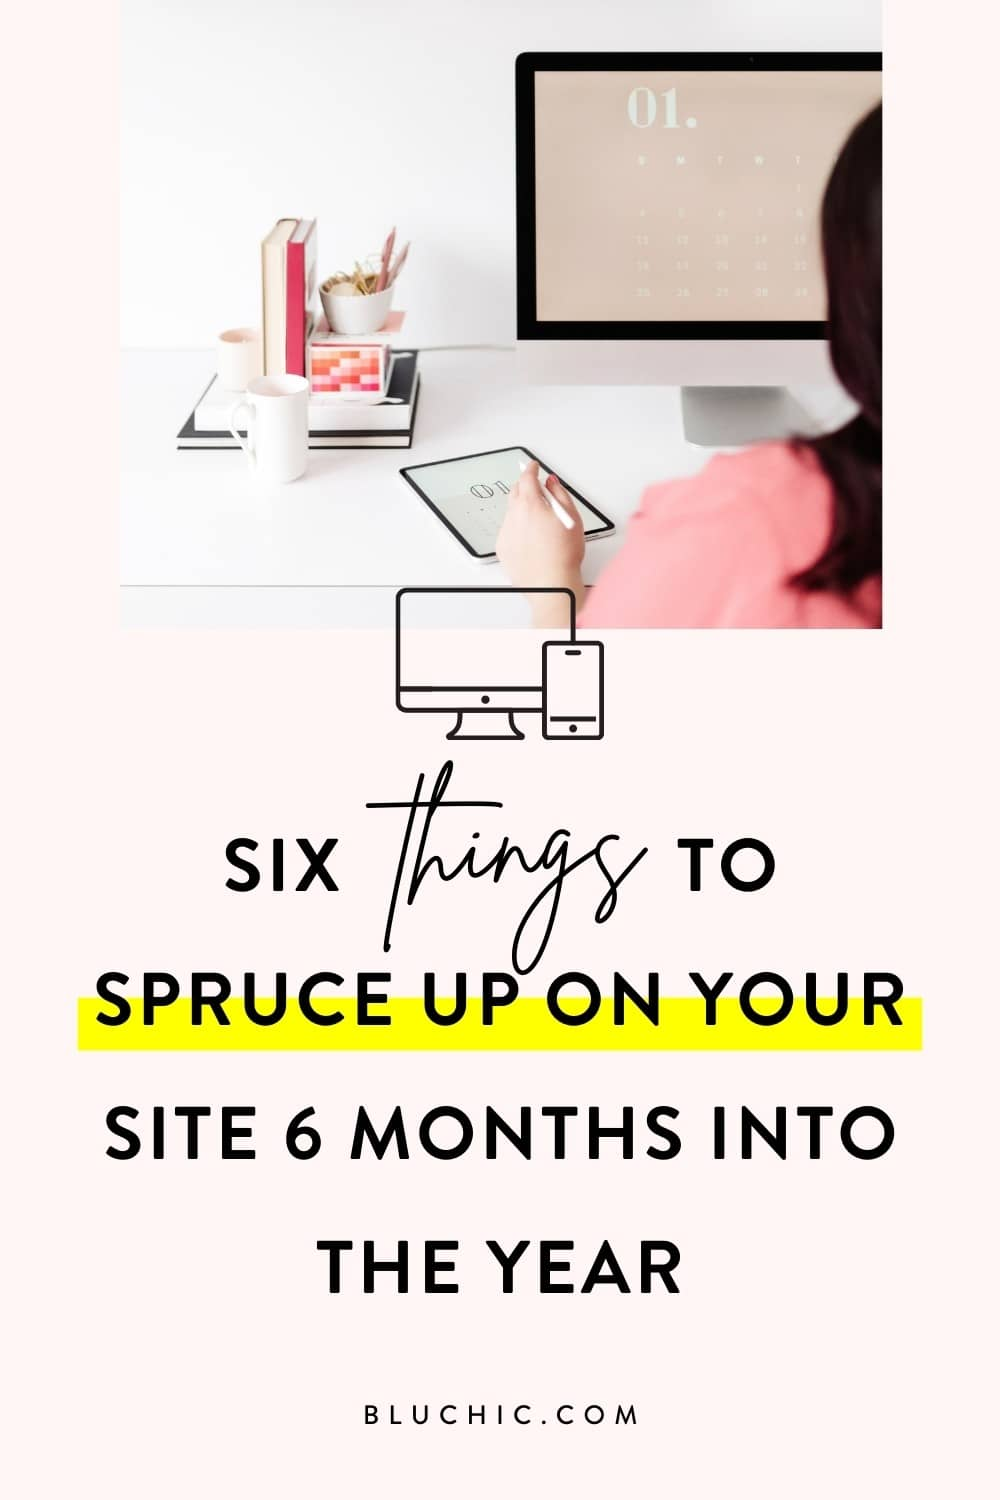 Here are six things to spruce up on your website now, so you can continue to grow your biz and reach your goals by the end of the year.